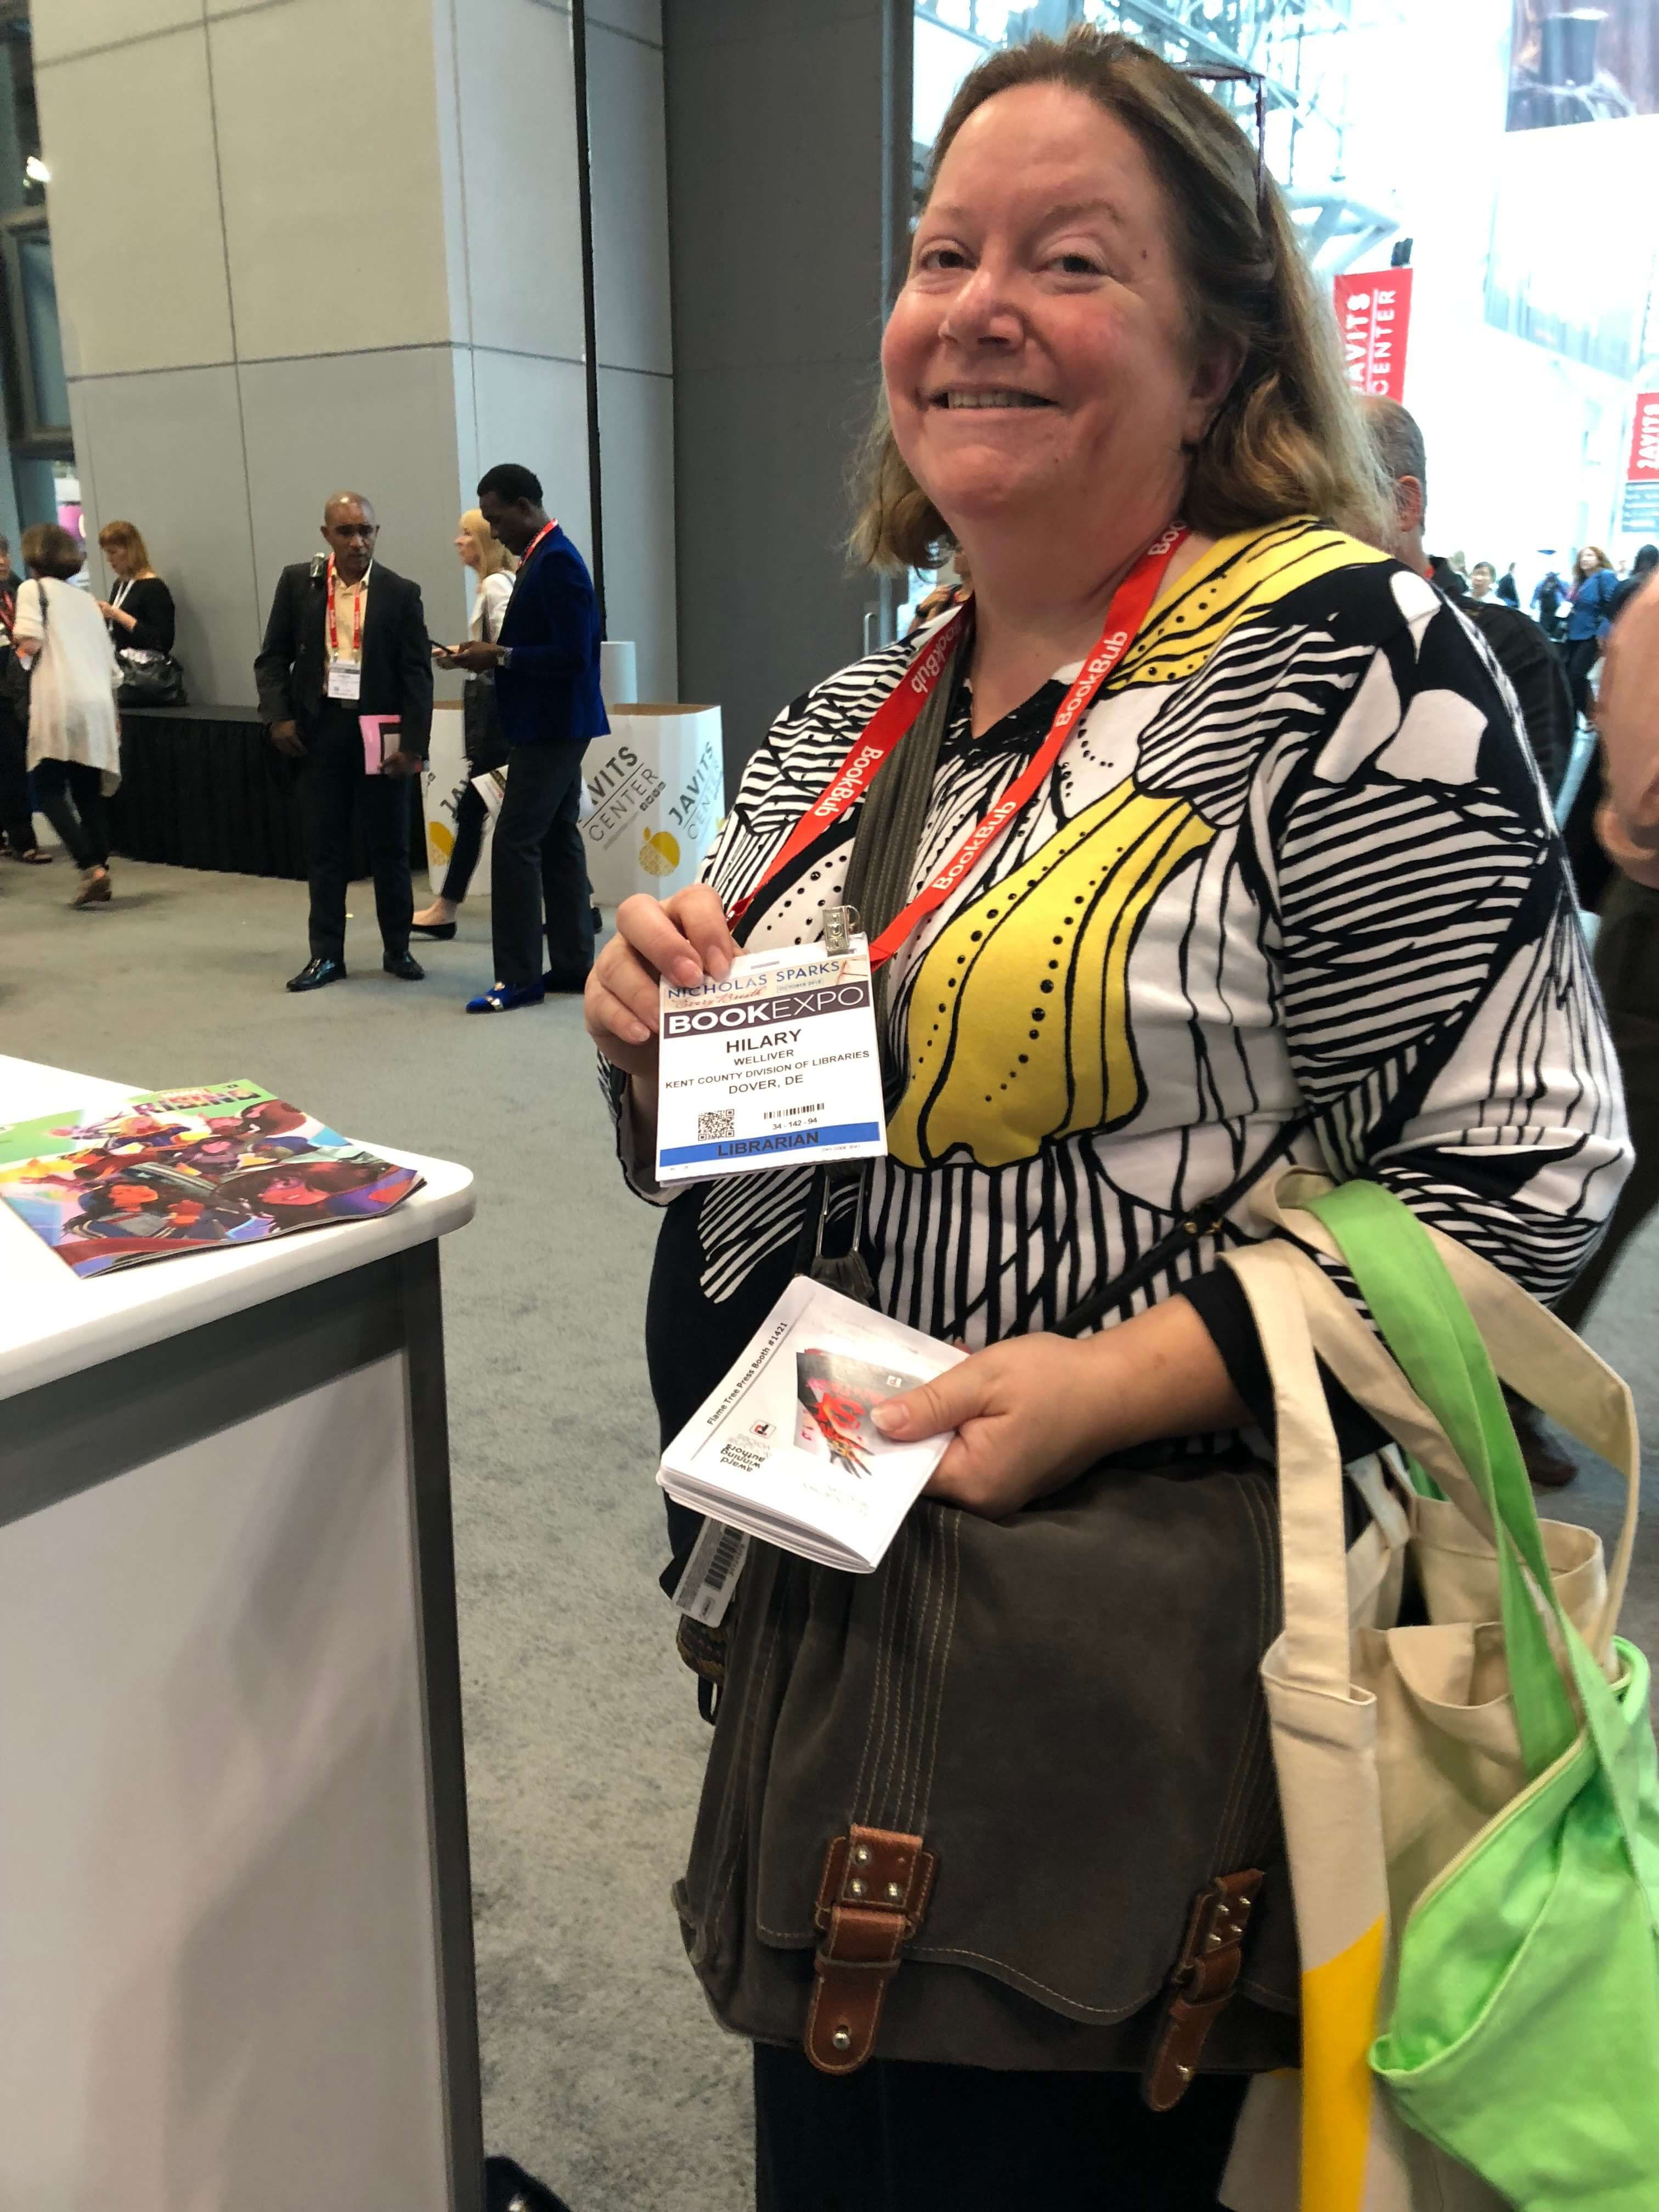 Librarians at BookExpo18